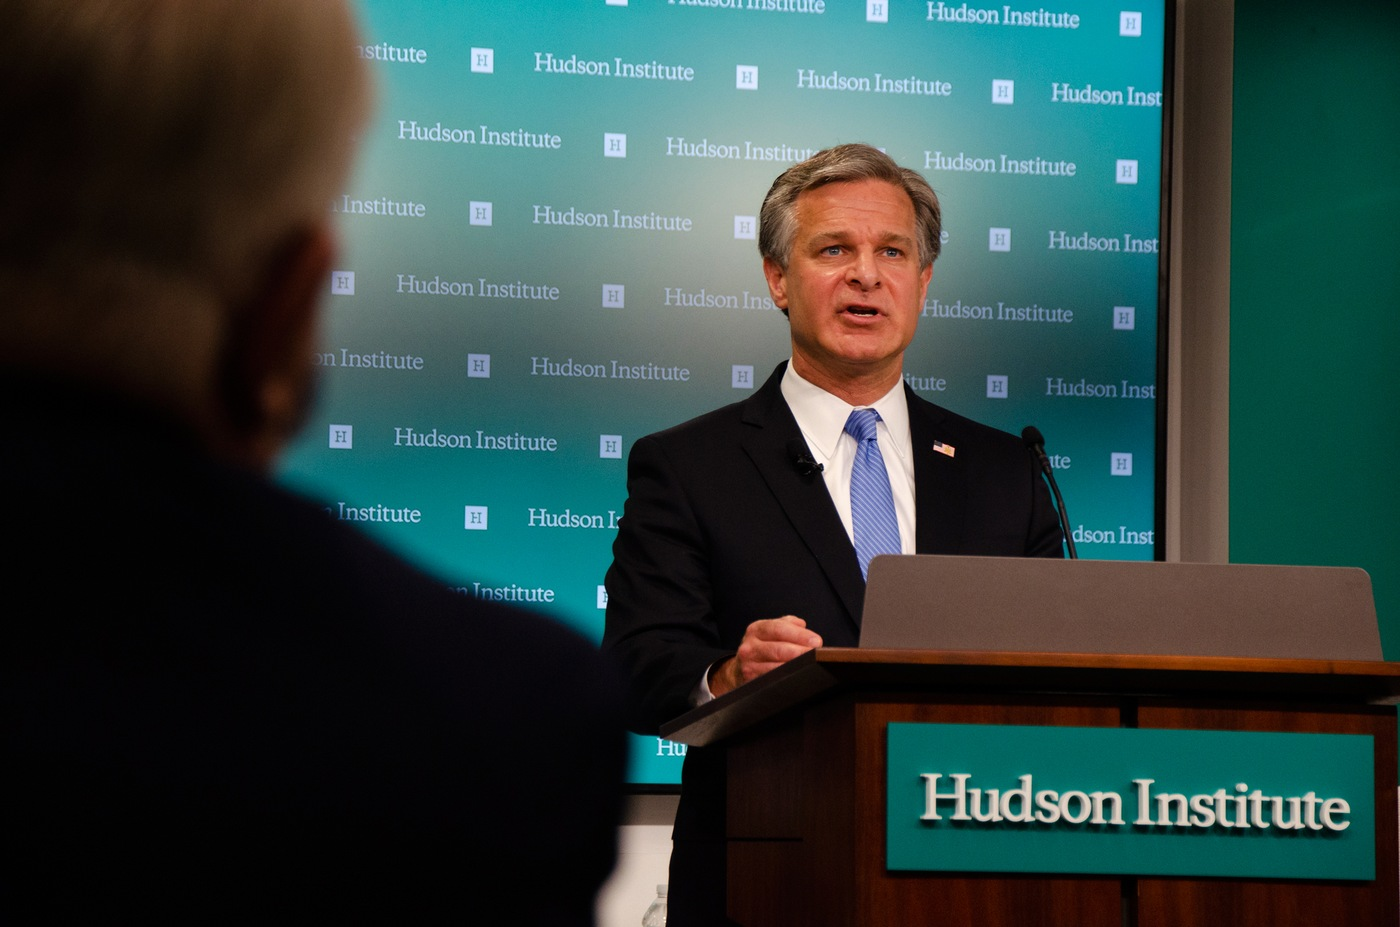 FBI Director Christopher Wray speaks at the Hudson Institute in Washington, D.C. on July 7, 2020, regarding the threat posed by China to U.S. economic and national security.